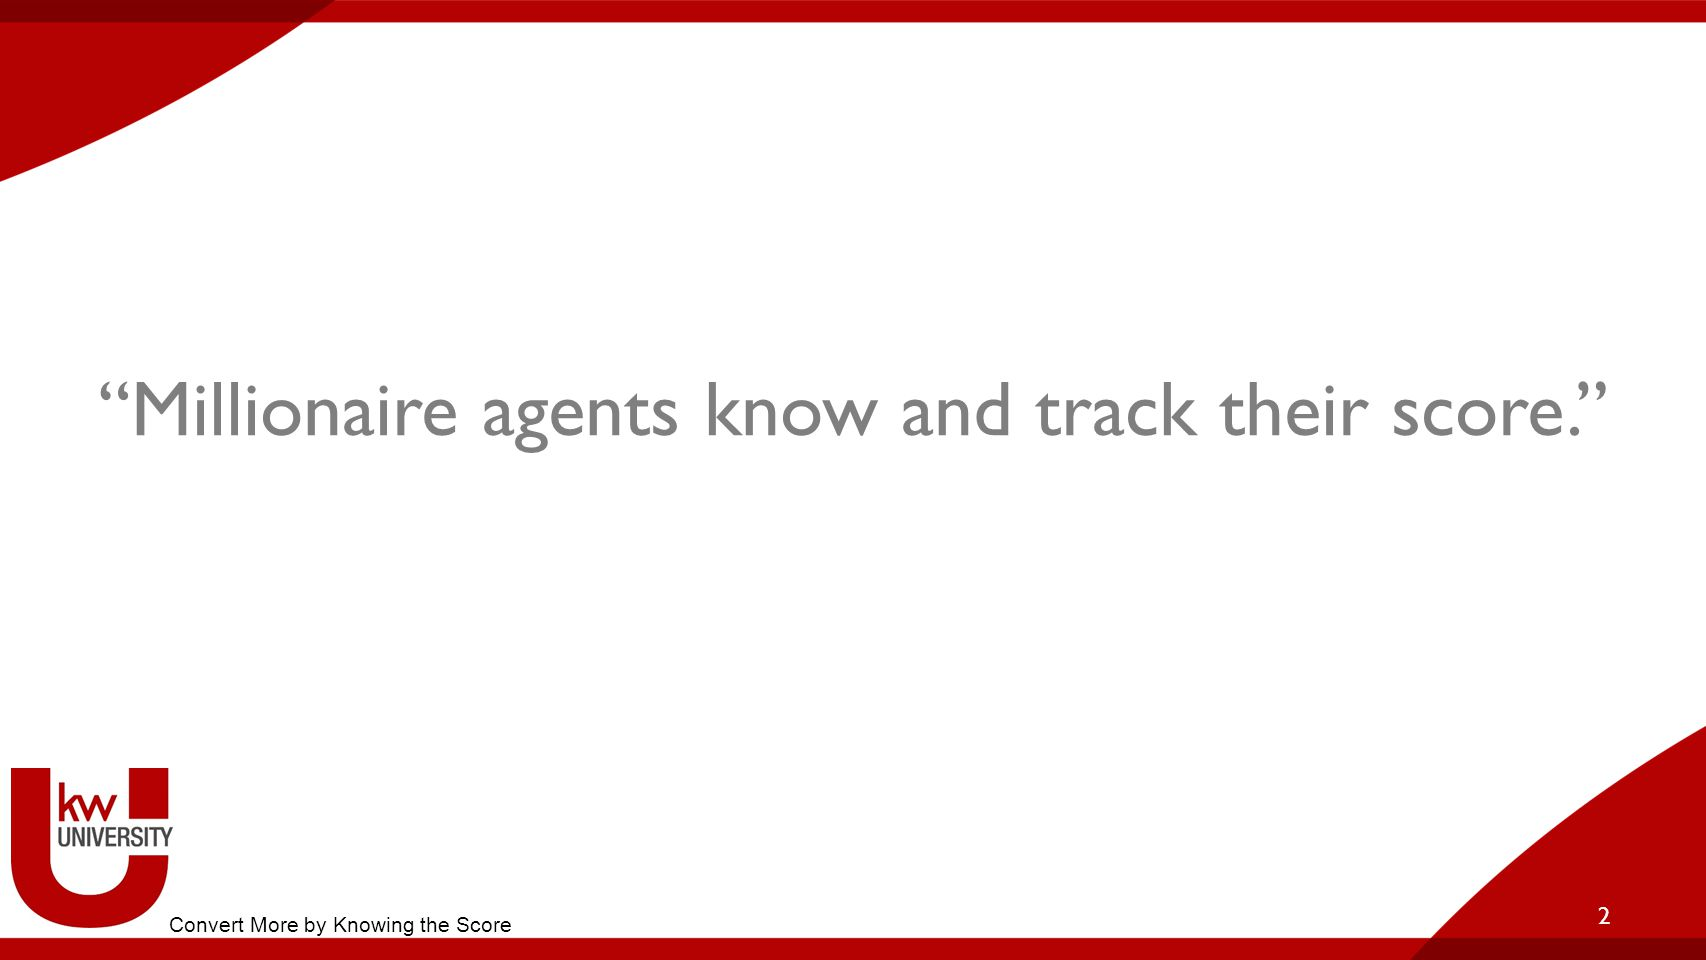 Millionaire agents know and track their score.